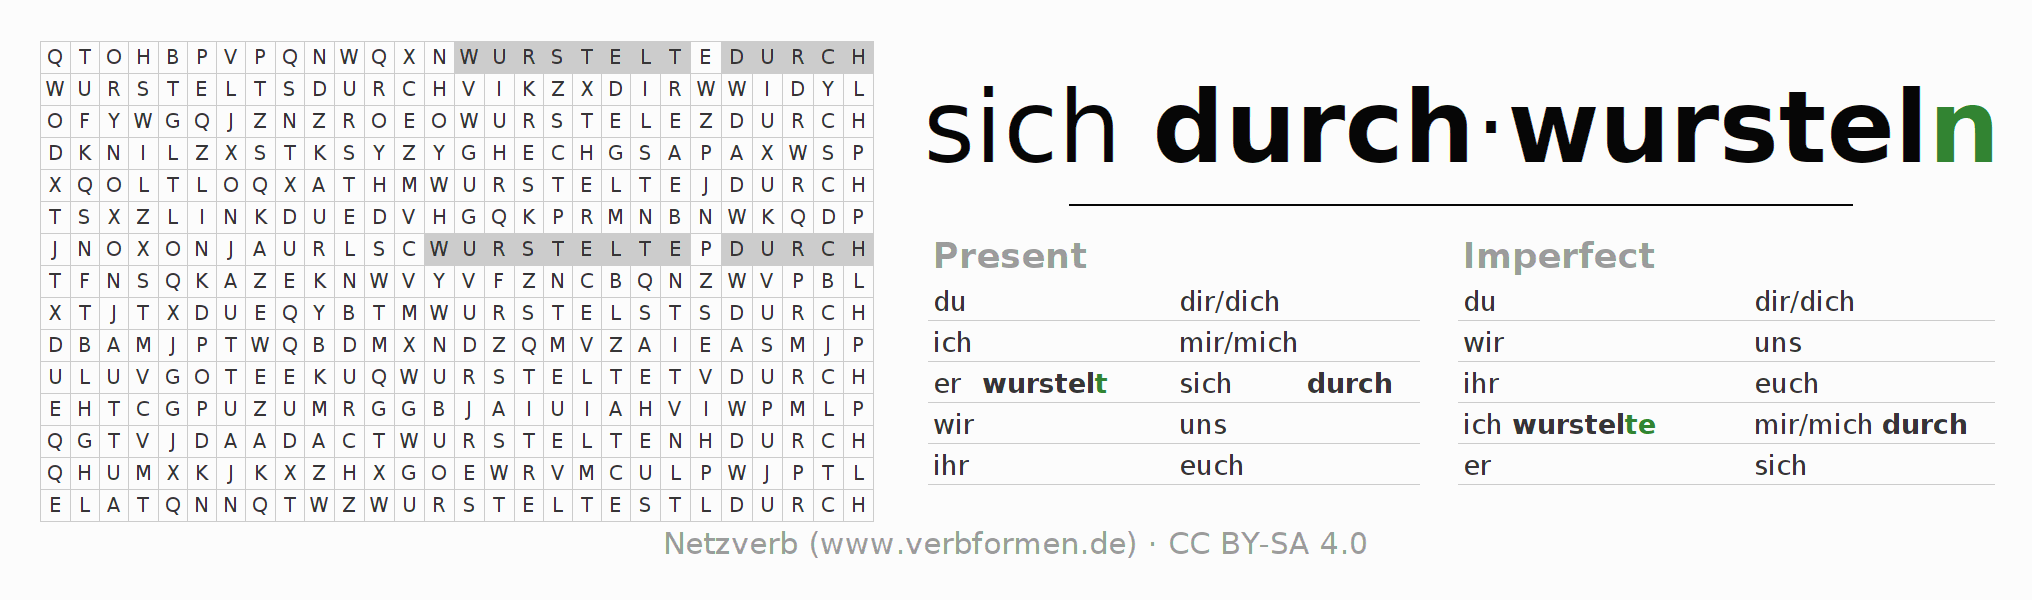 Word search puzzle for the conjugation of the verb sich durchwursteln